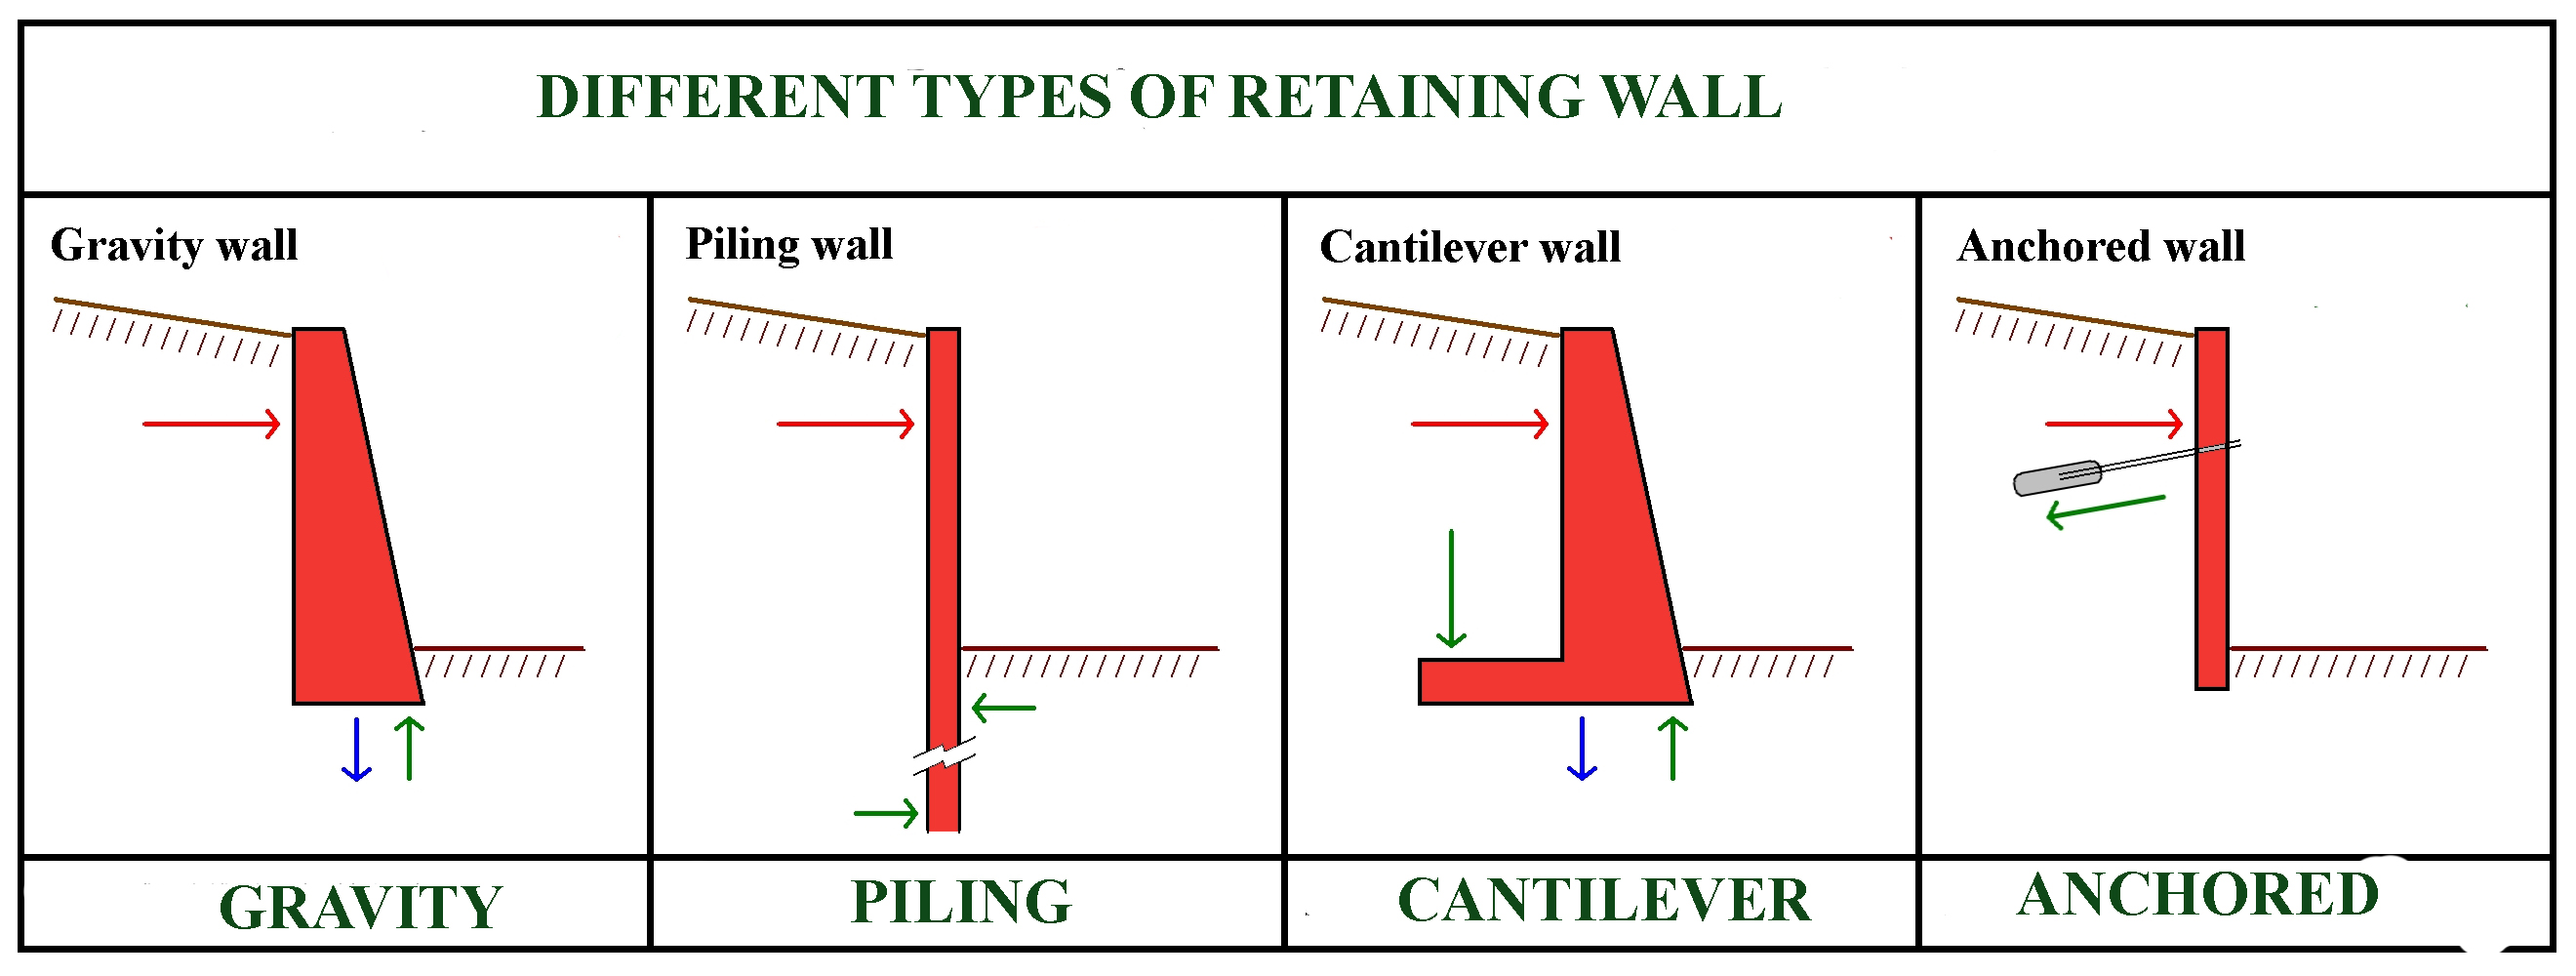 counter fort buttressed retaining wall